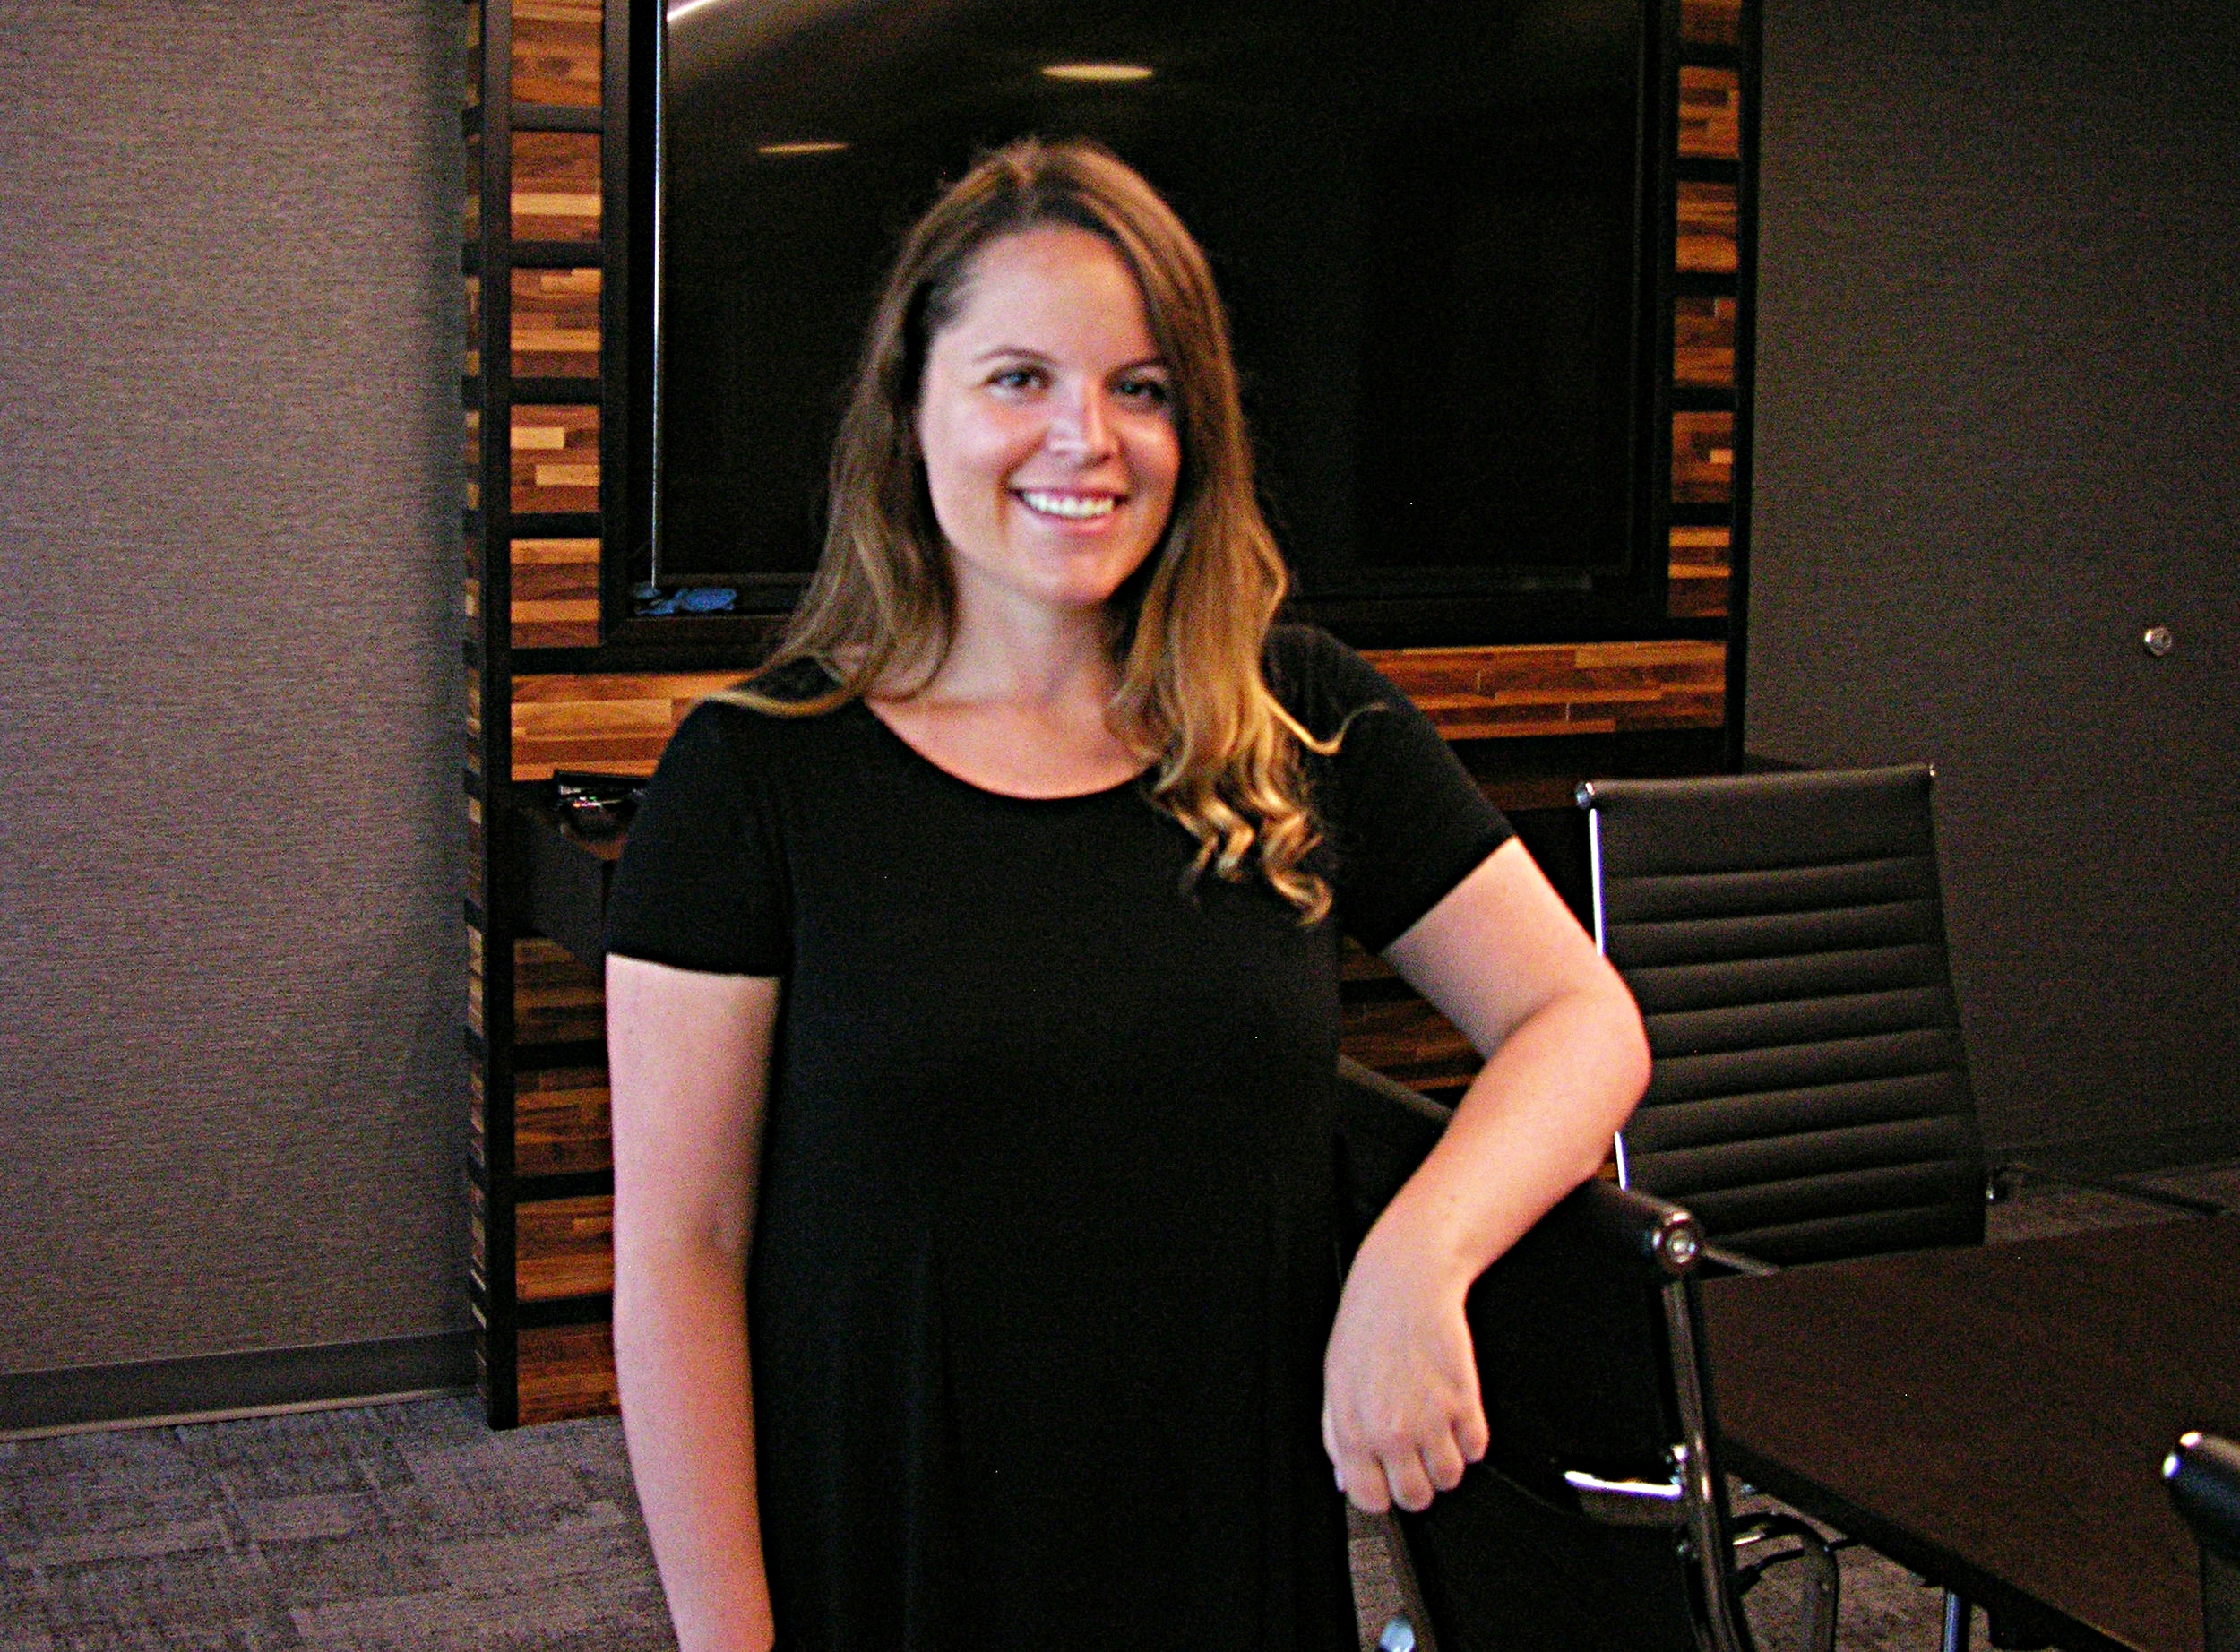 Allison Heraty, Director of Marketing and Communications